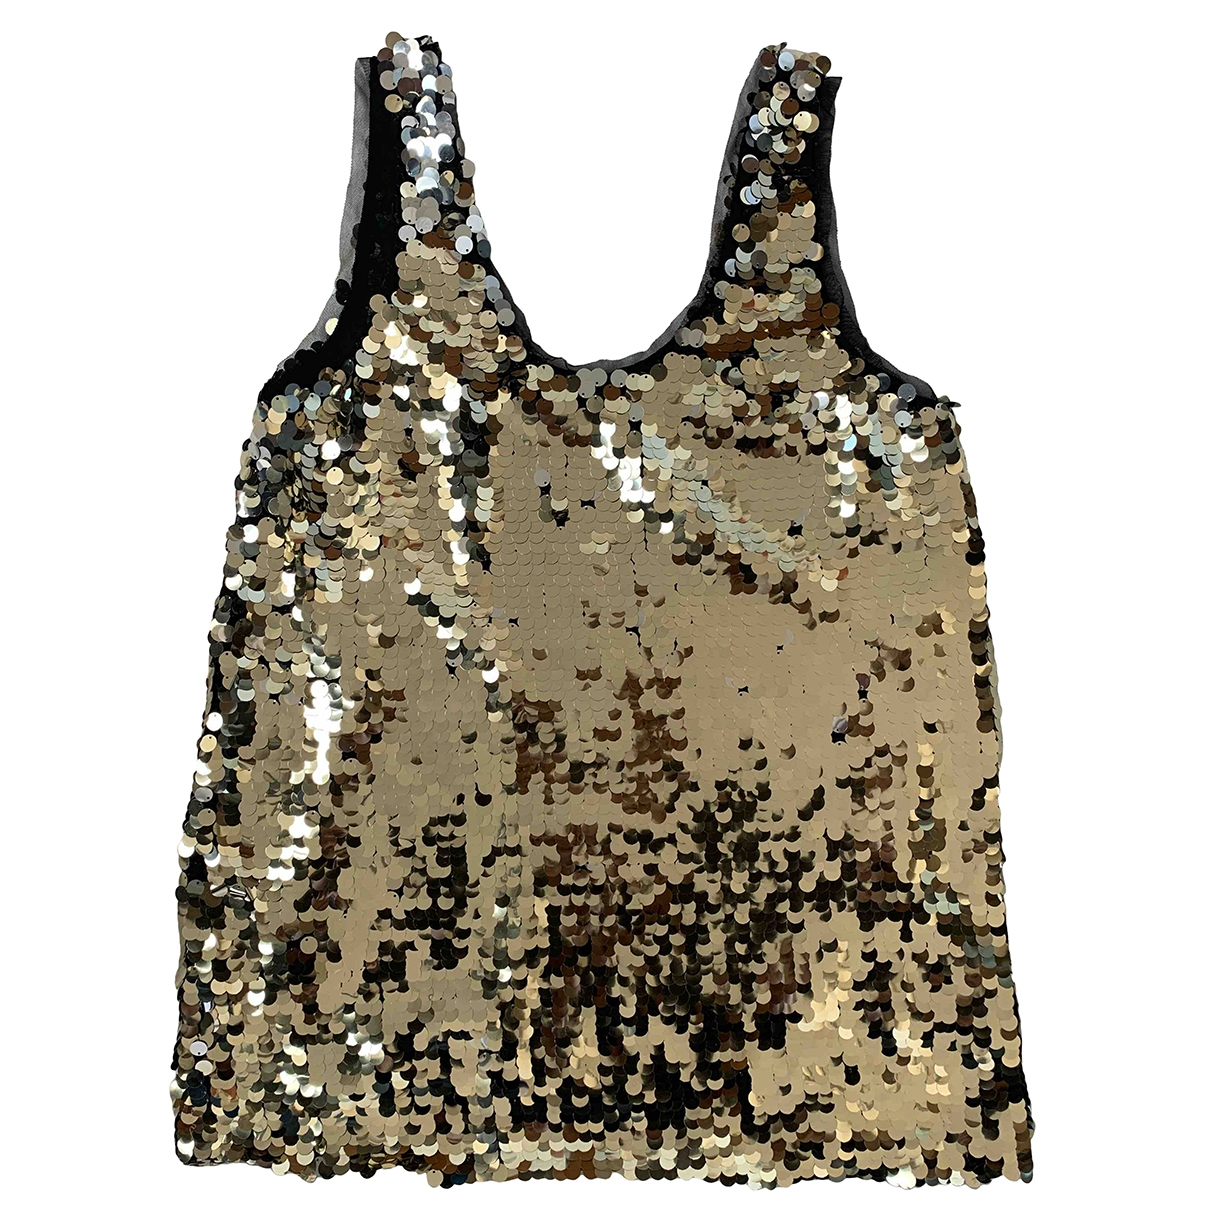 Zara \N Metallic Glitter  top for Women L International